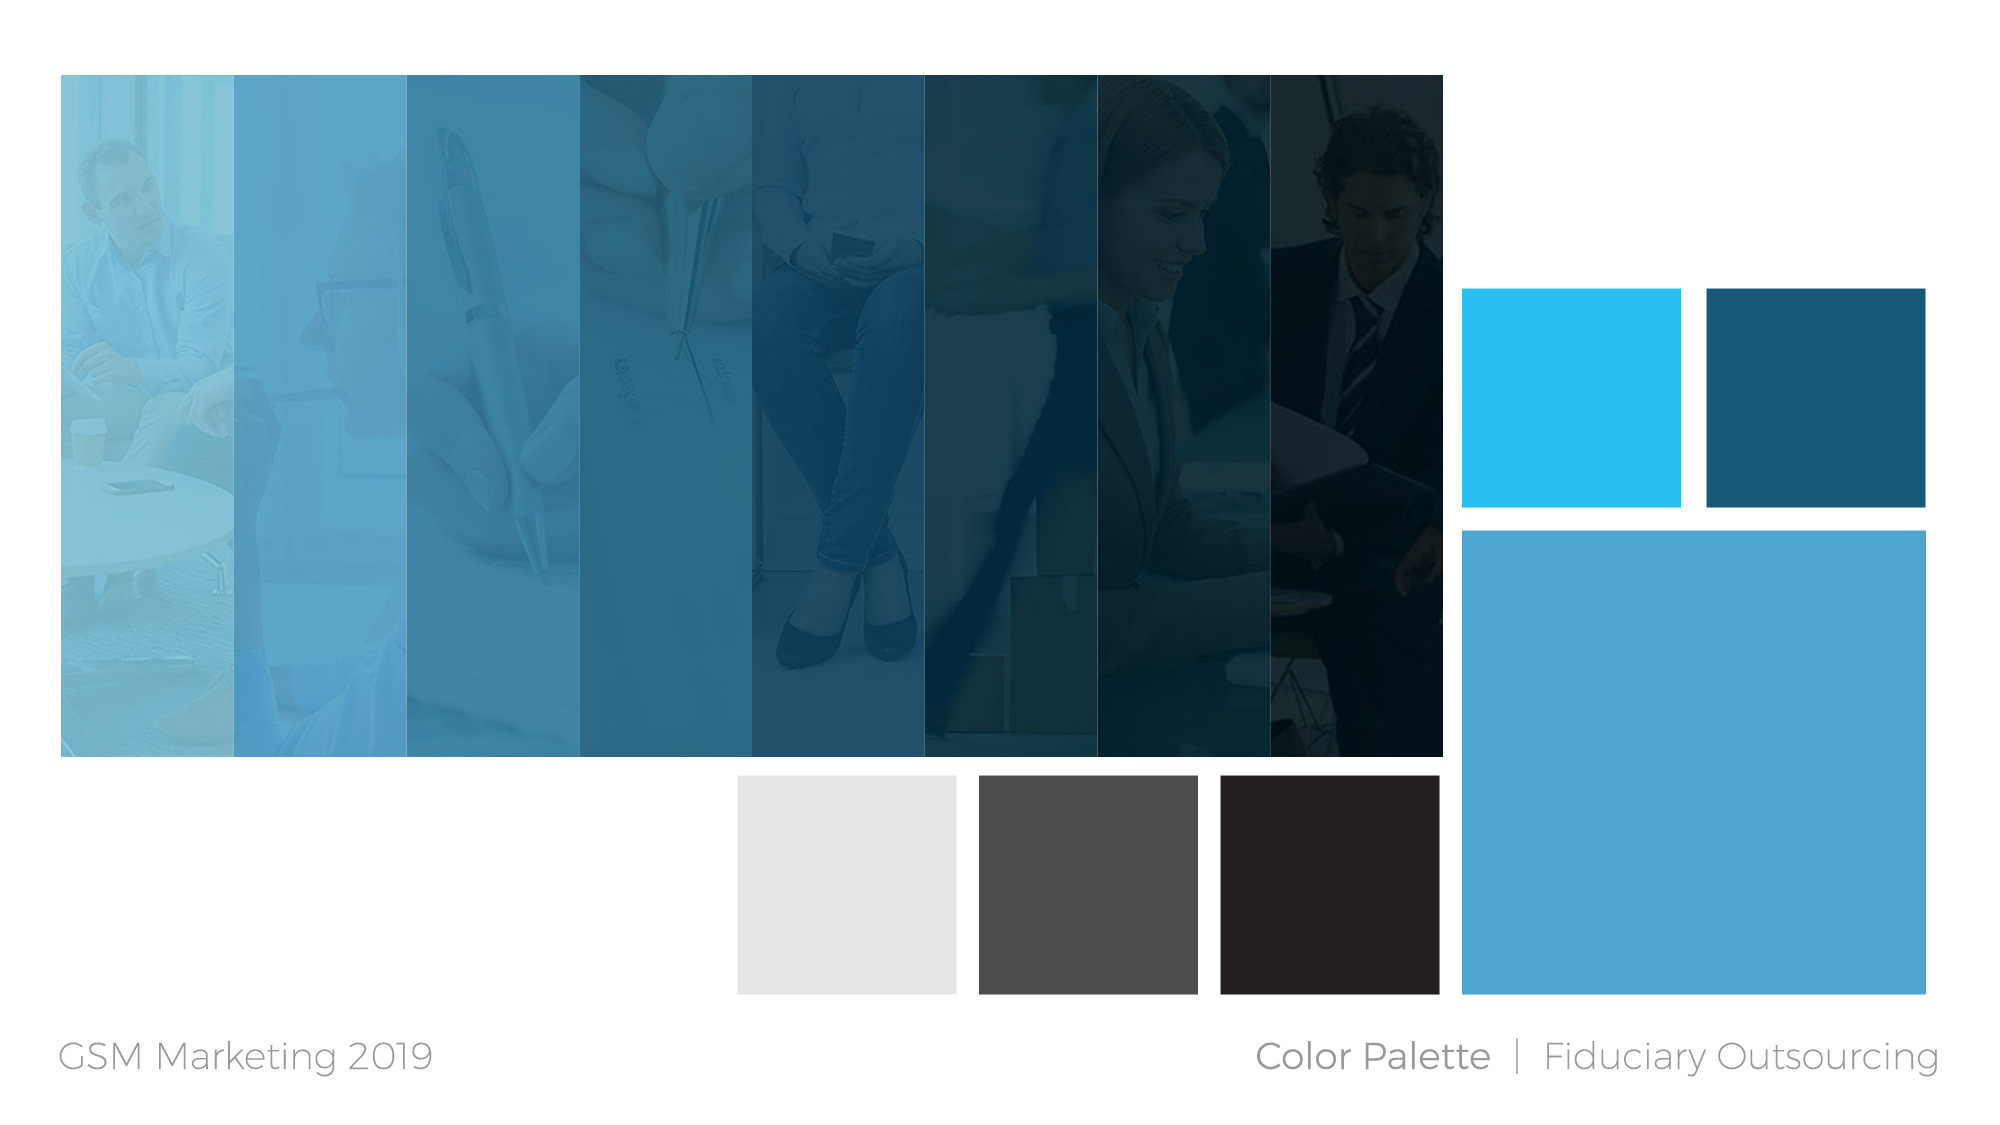 Fiduciary Outsourcing brand color palette plan